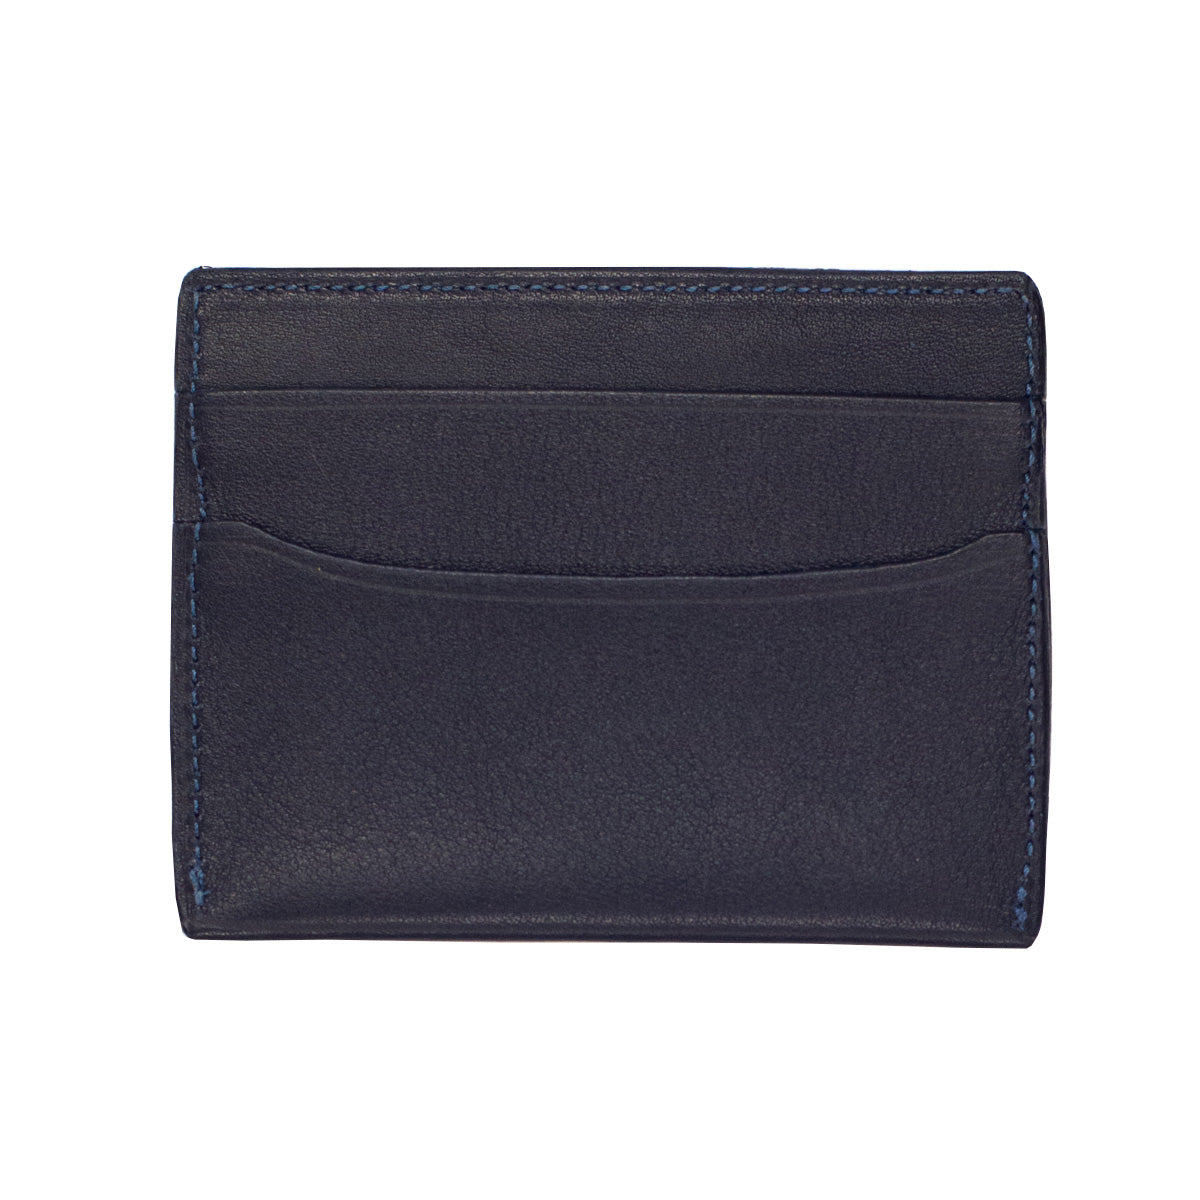 Handmade Wallet in Navy Leather